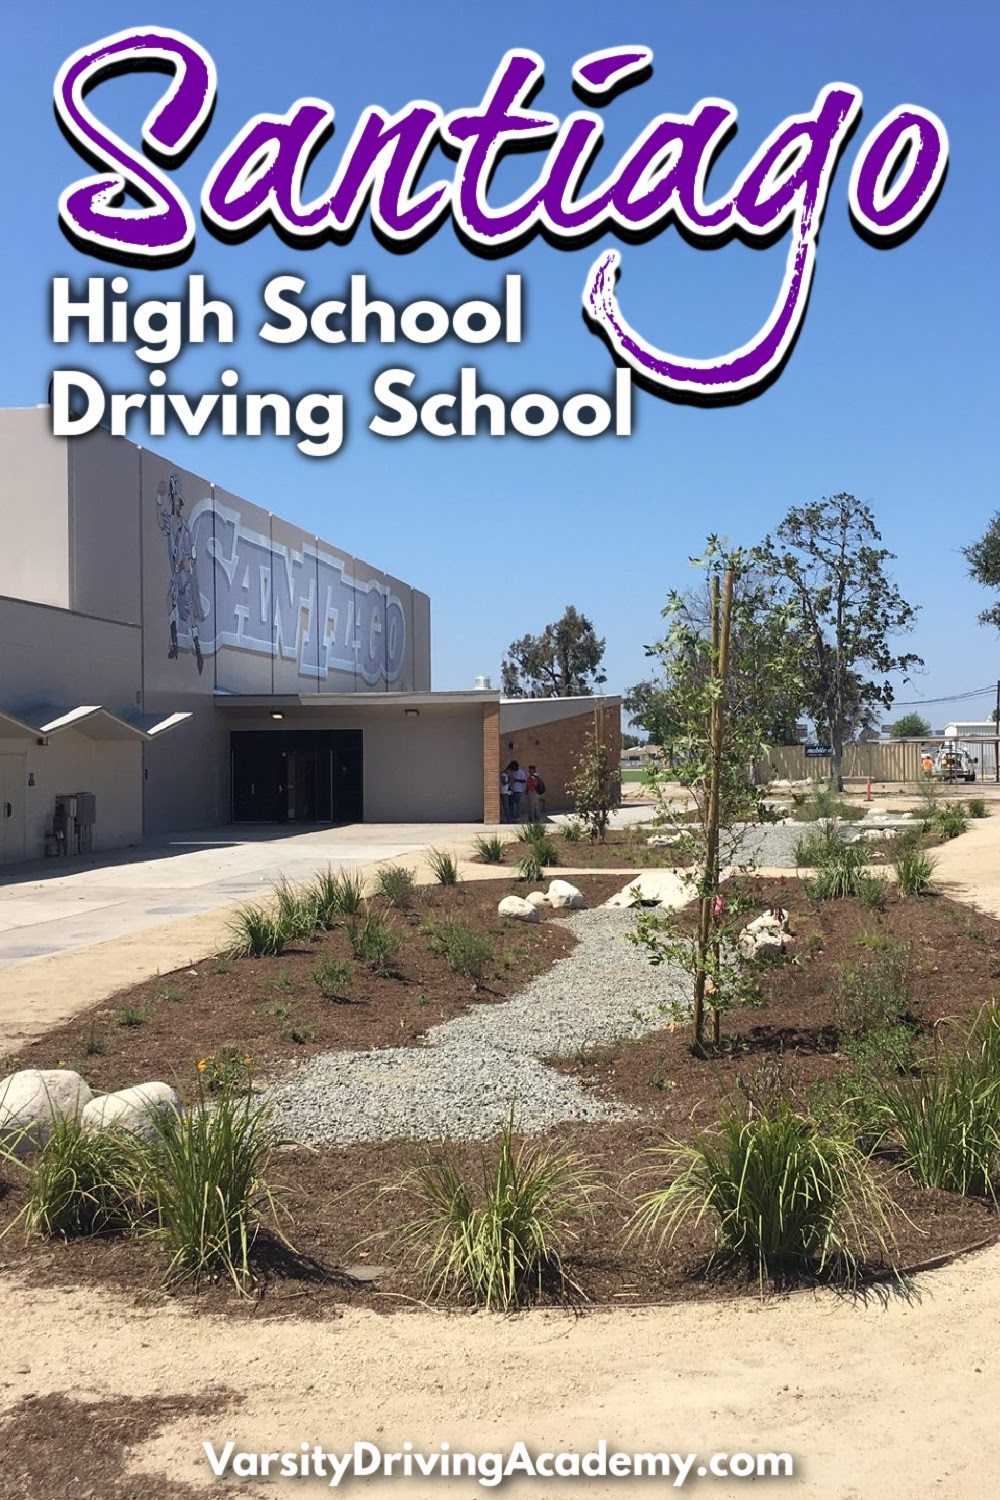 The best Santiago High School driving school is Varsity Driving Academy where success is the goal and safety is the priority.